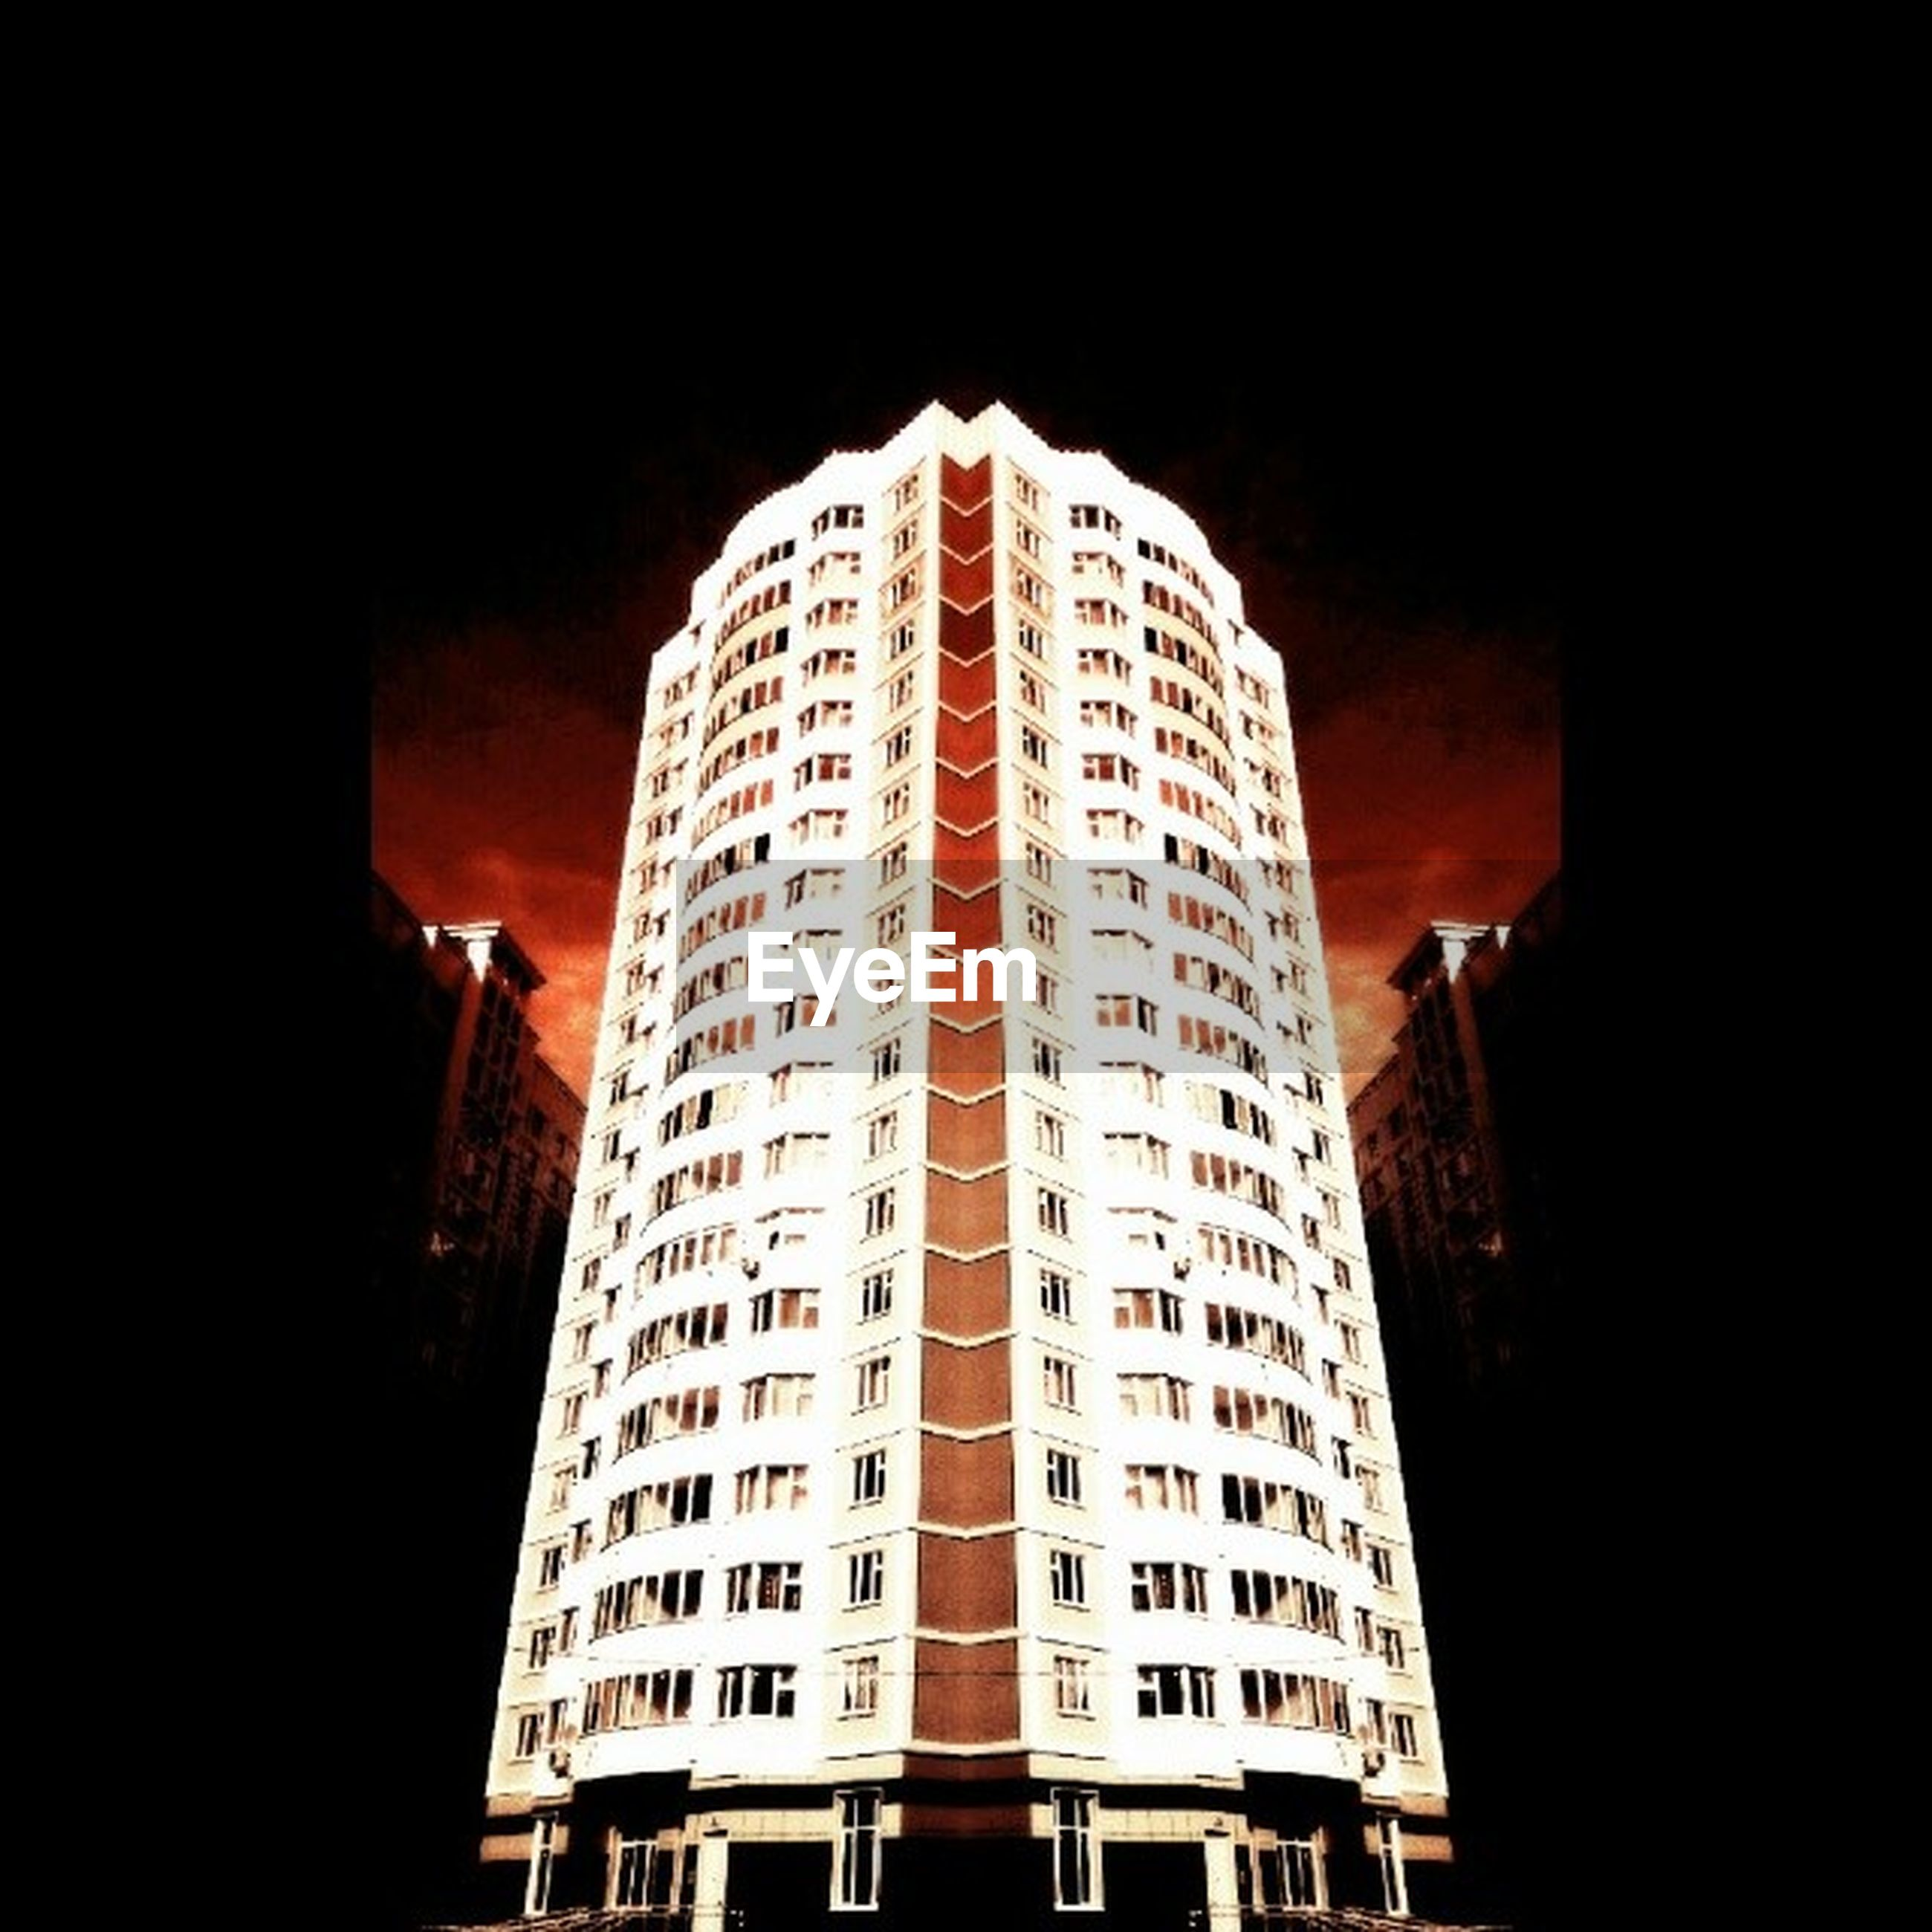 architecture, building exterior, built structure, skyscraper, low angle view, city, tower, tall - high, night, illuminated, modern, sky, office building, building, tall, outdoors, capital cities, travel destinations, city life, no people